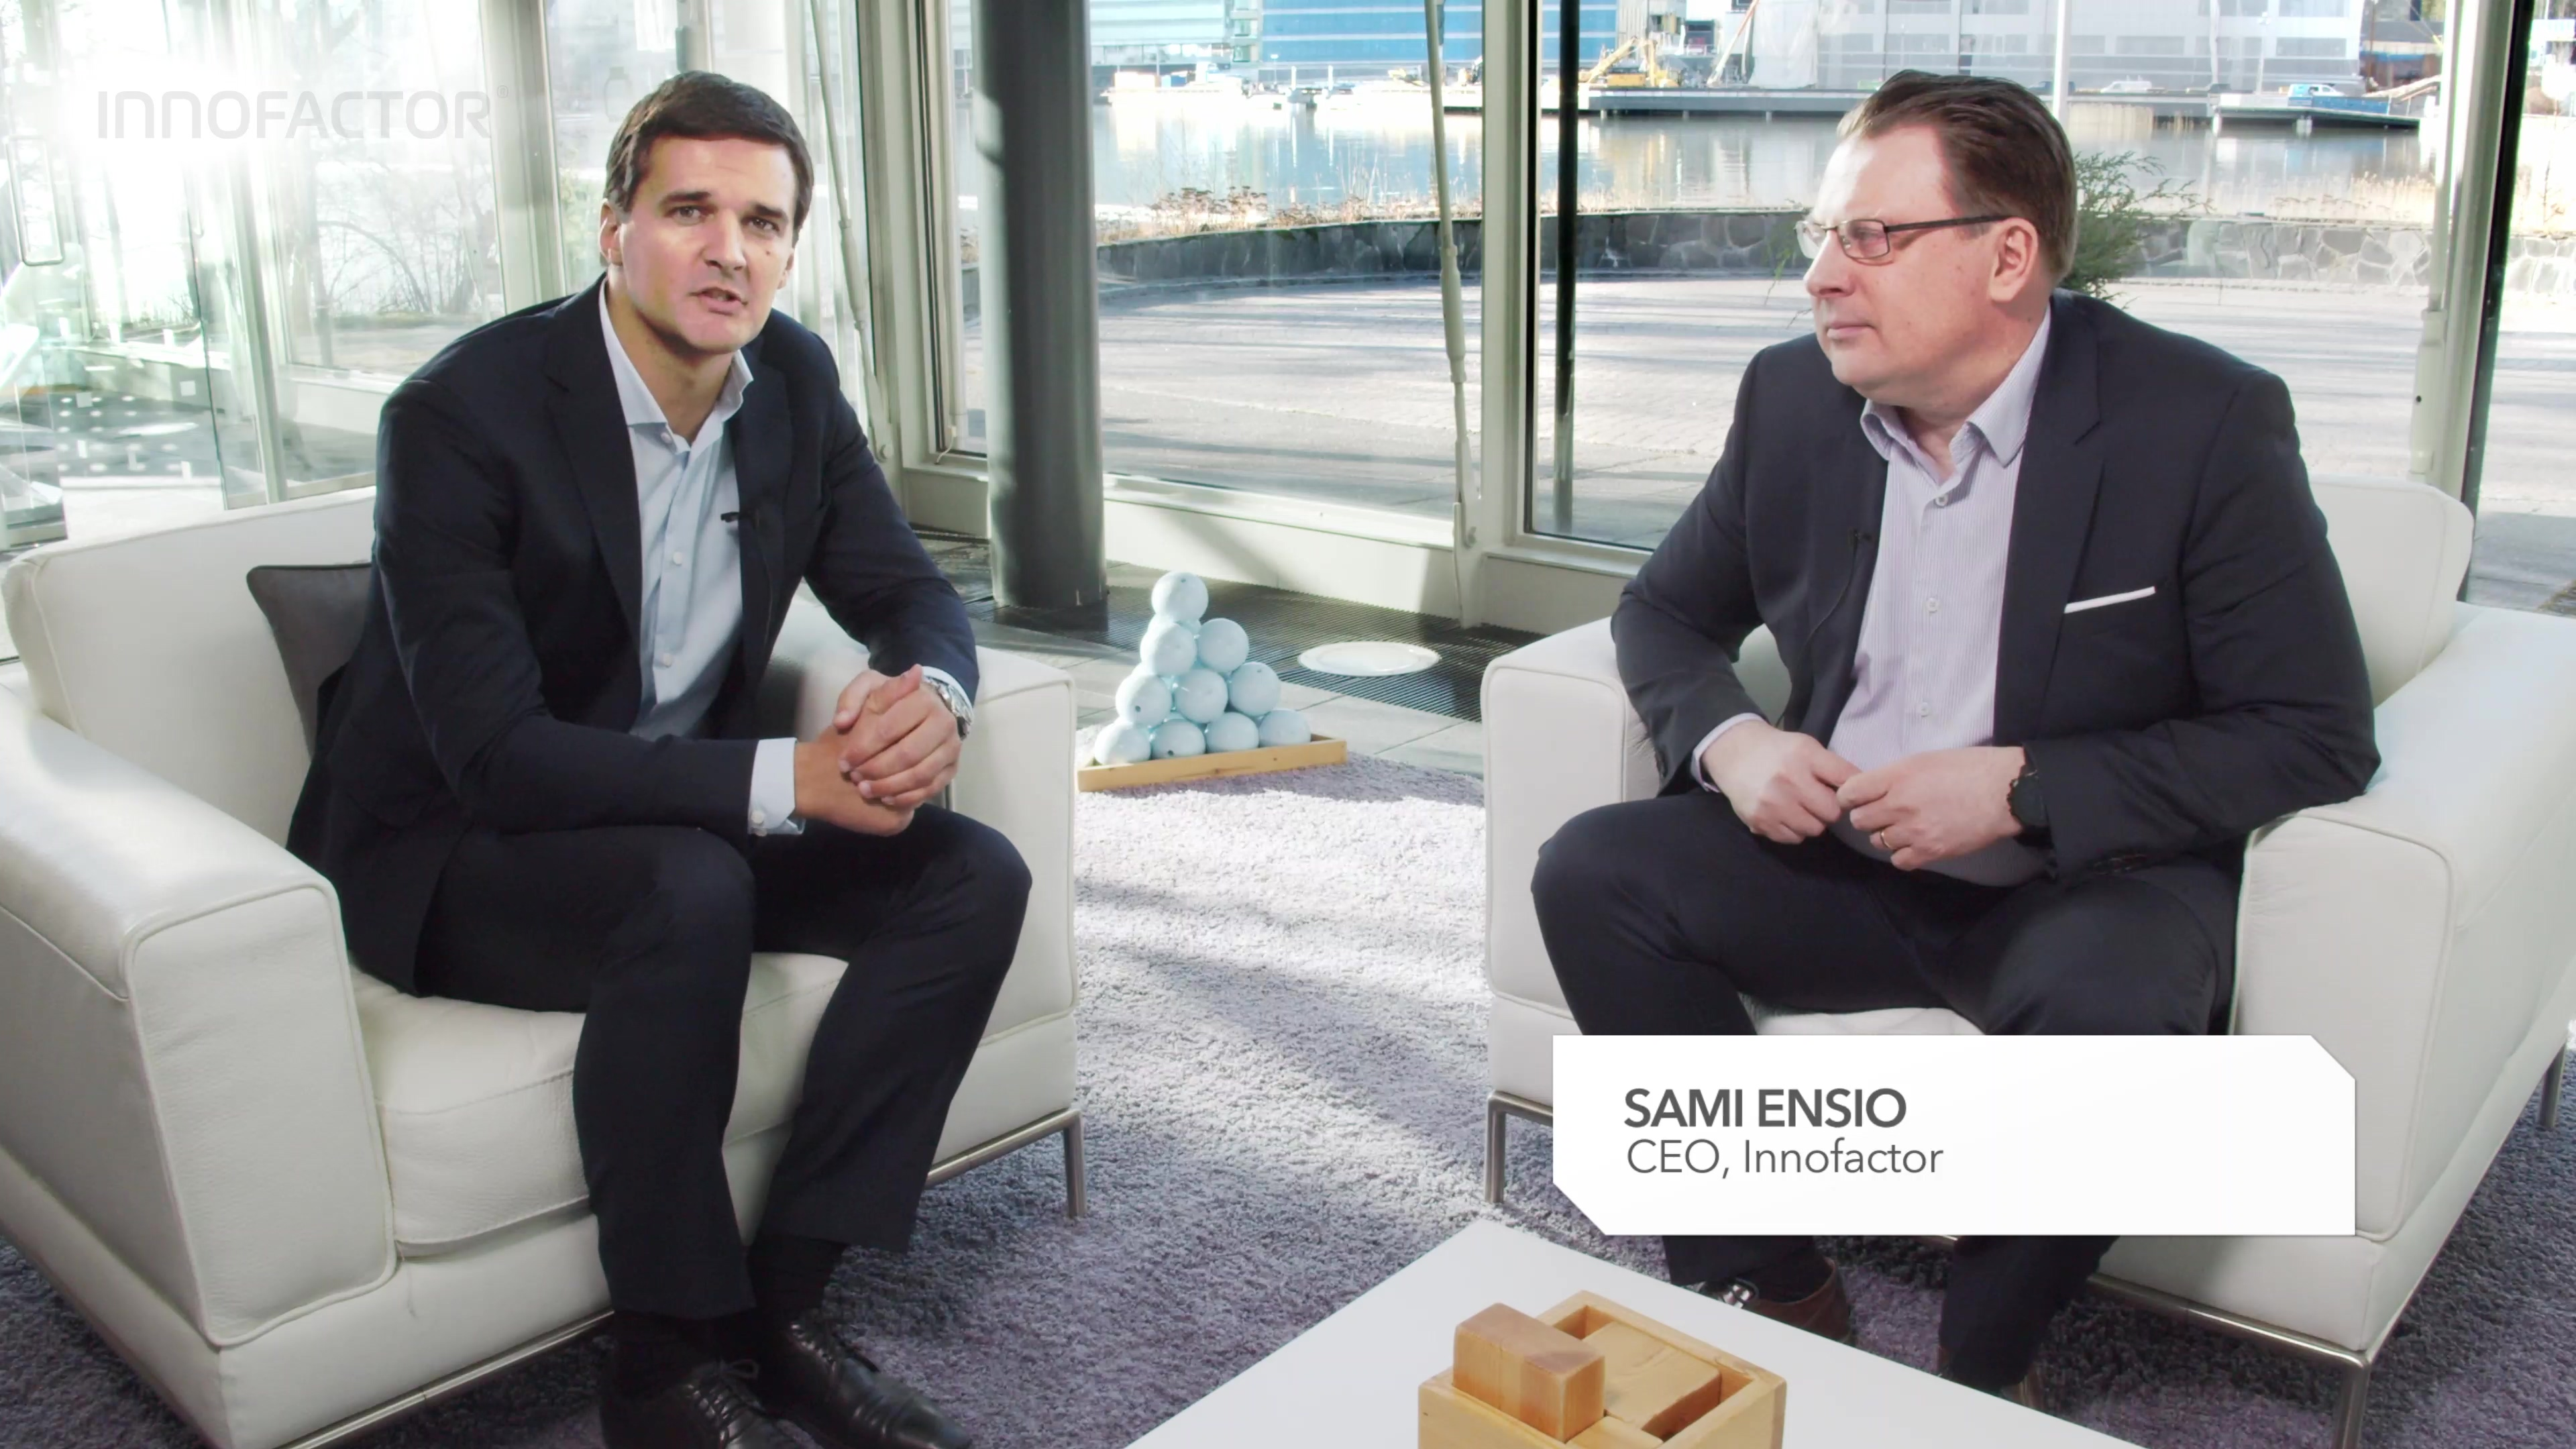 Innofactor Q419 video interview with CEO Sami Ensio full